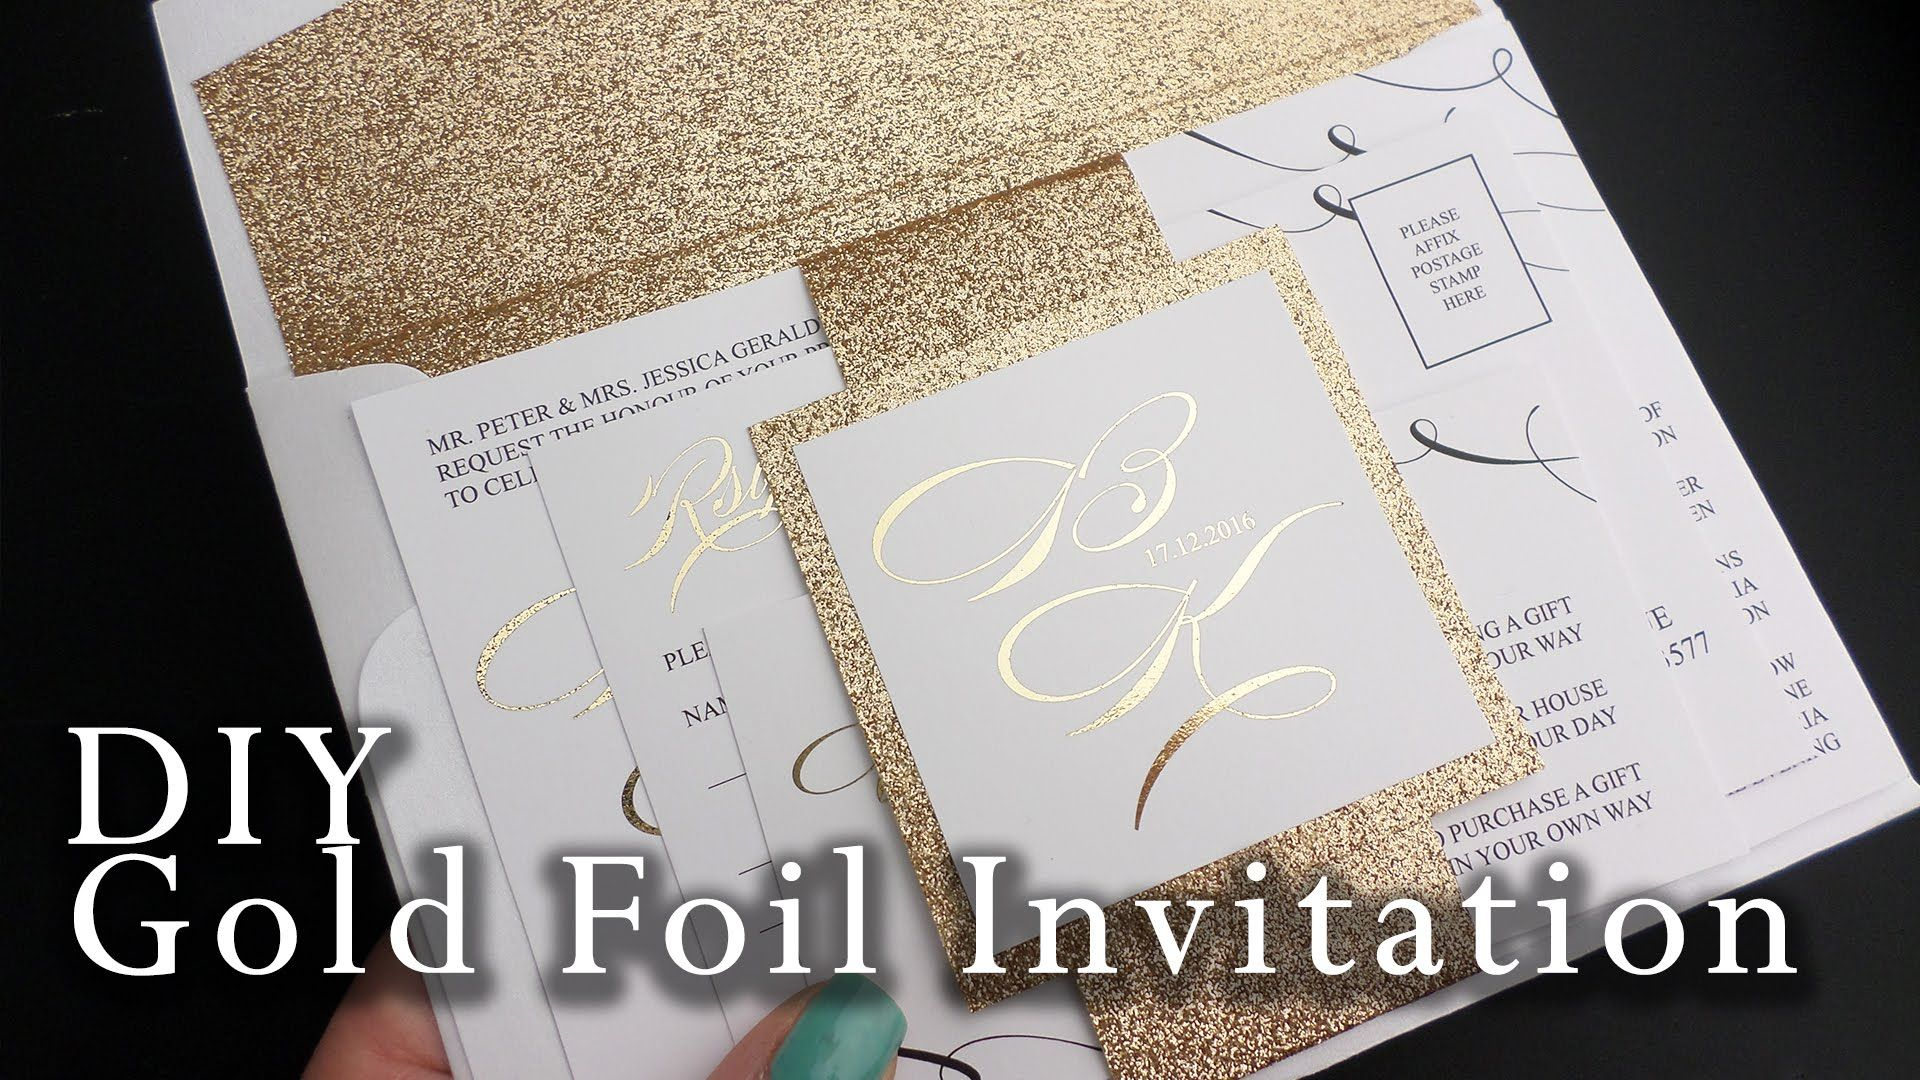 How to make your own gold foil belly band wedding invitation | DIY ...